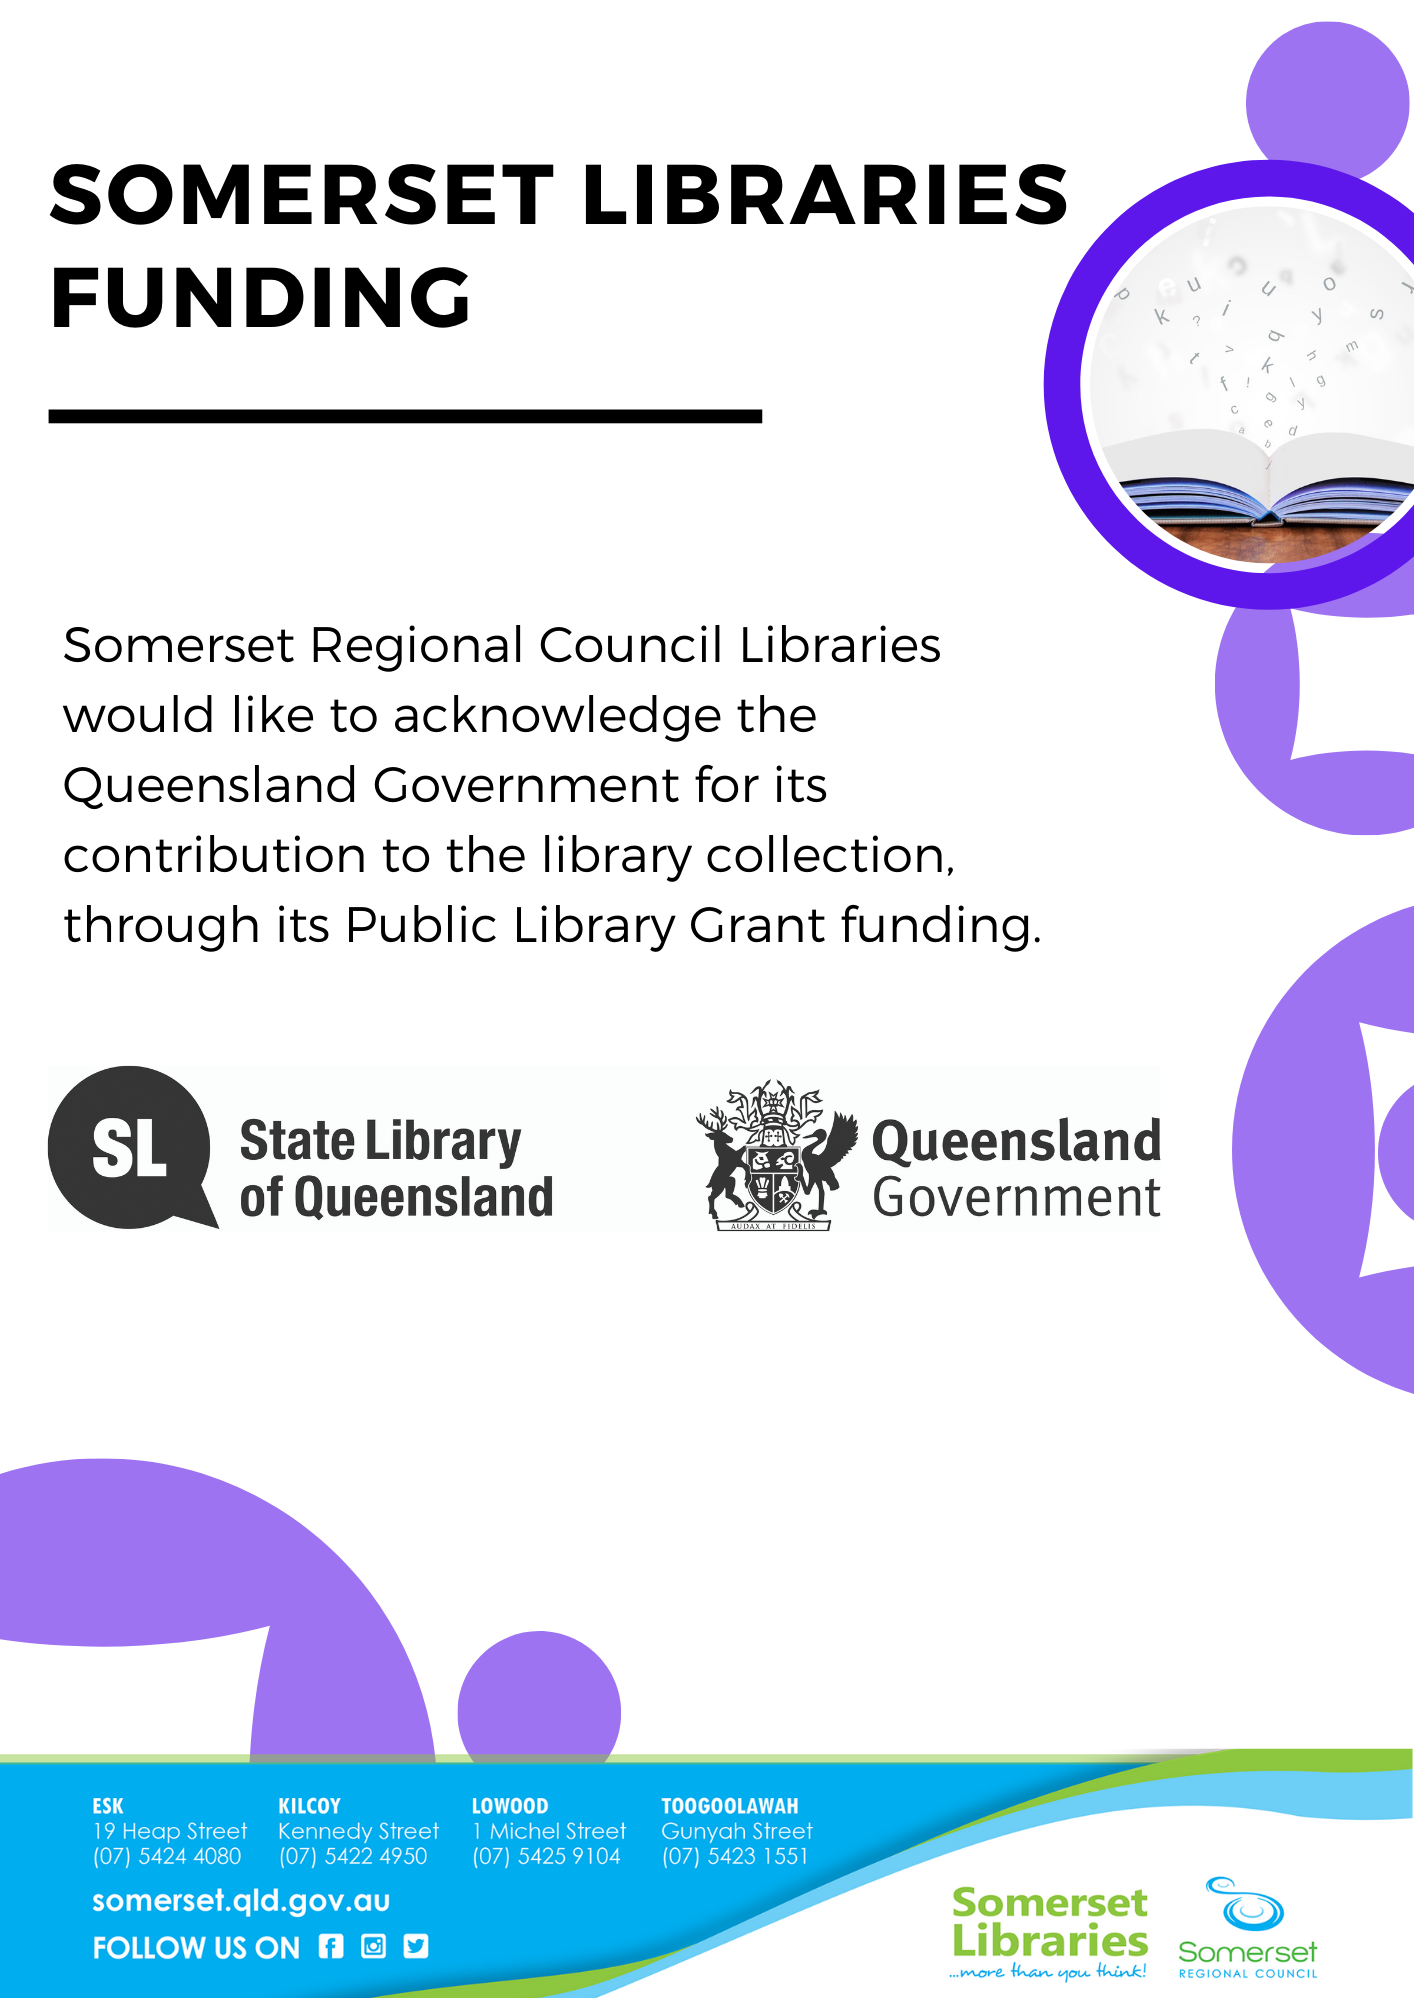 Somerset Libraries Funding: Somerset Regional Council Libraries would like to acknowledge the Queensland Government for its contribution to the library collection, through its Public Library Grant funding. State Library of Queensland